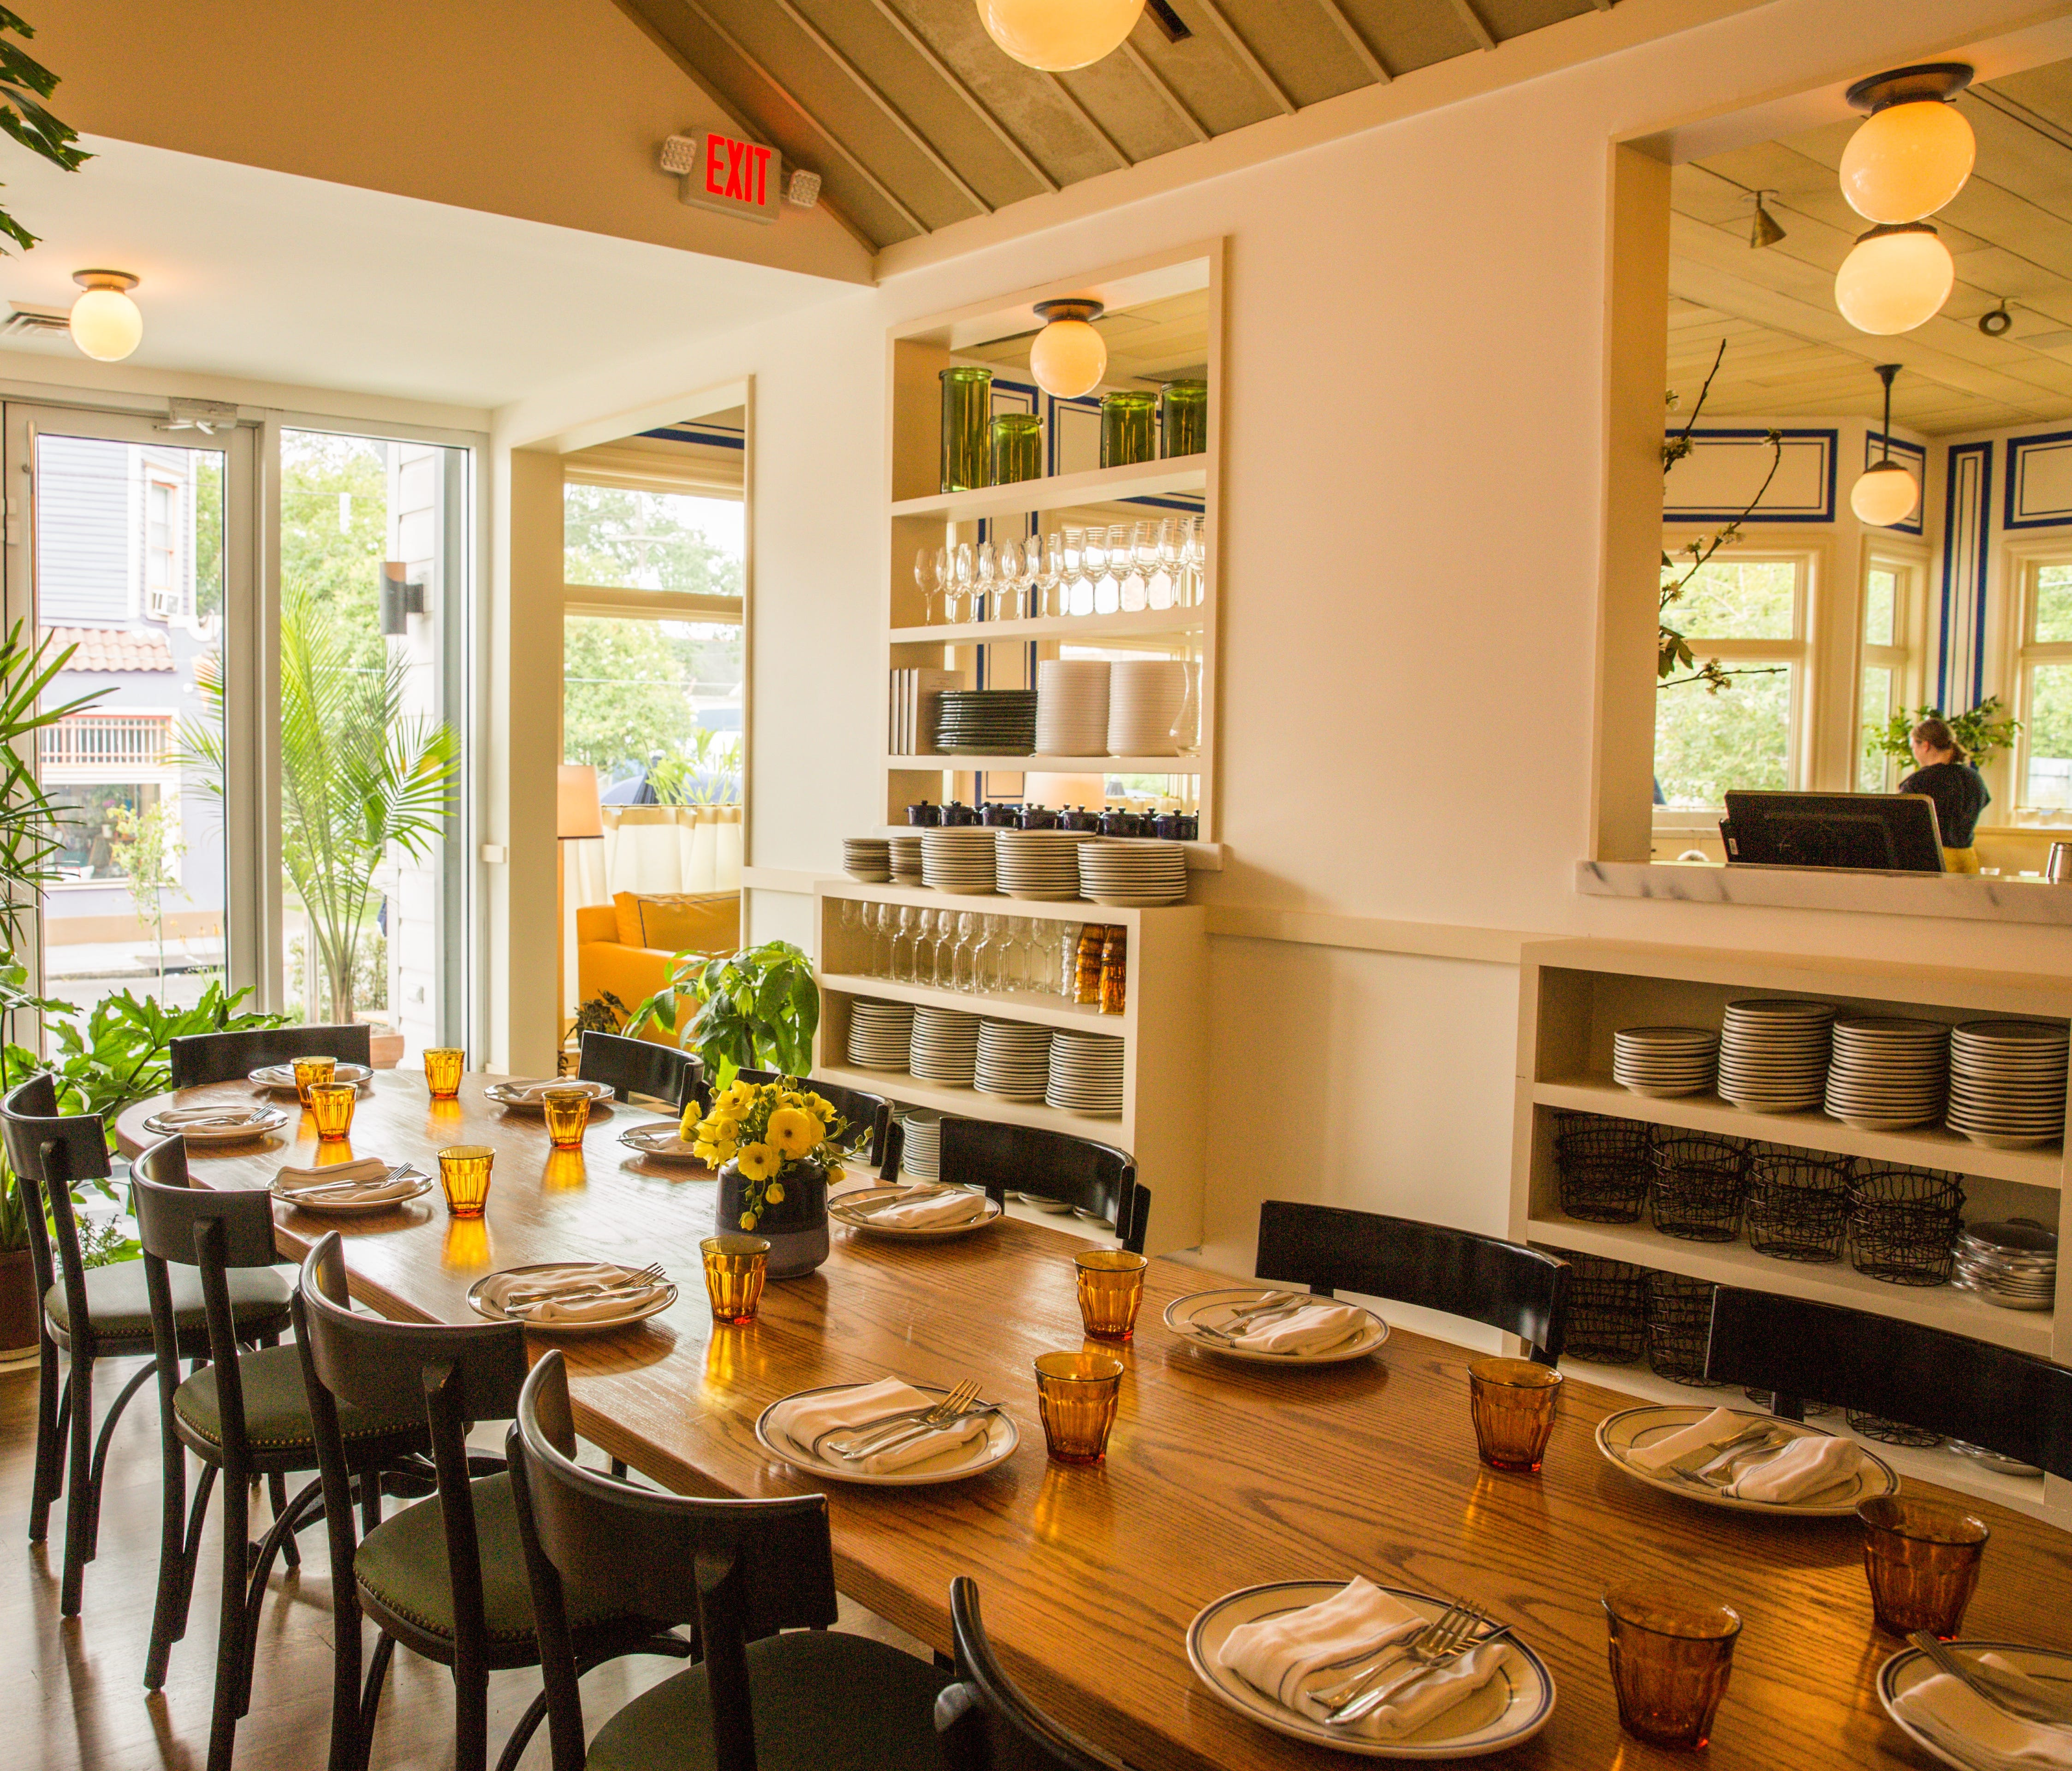 Saba opened in Uptown New Orleans on May 4.